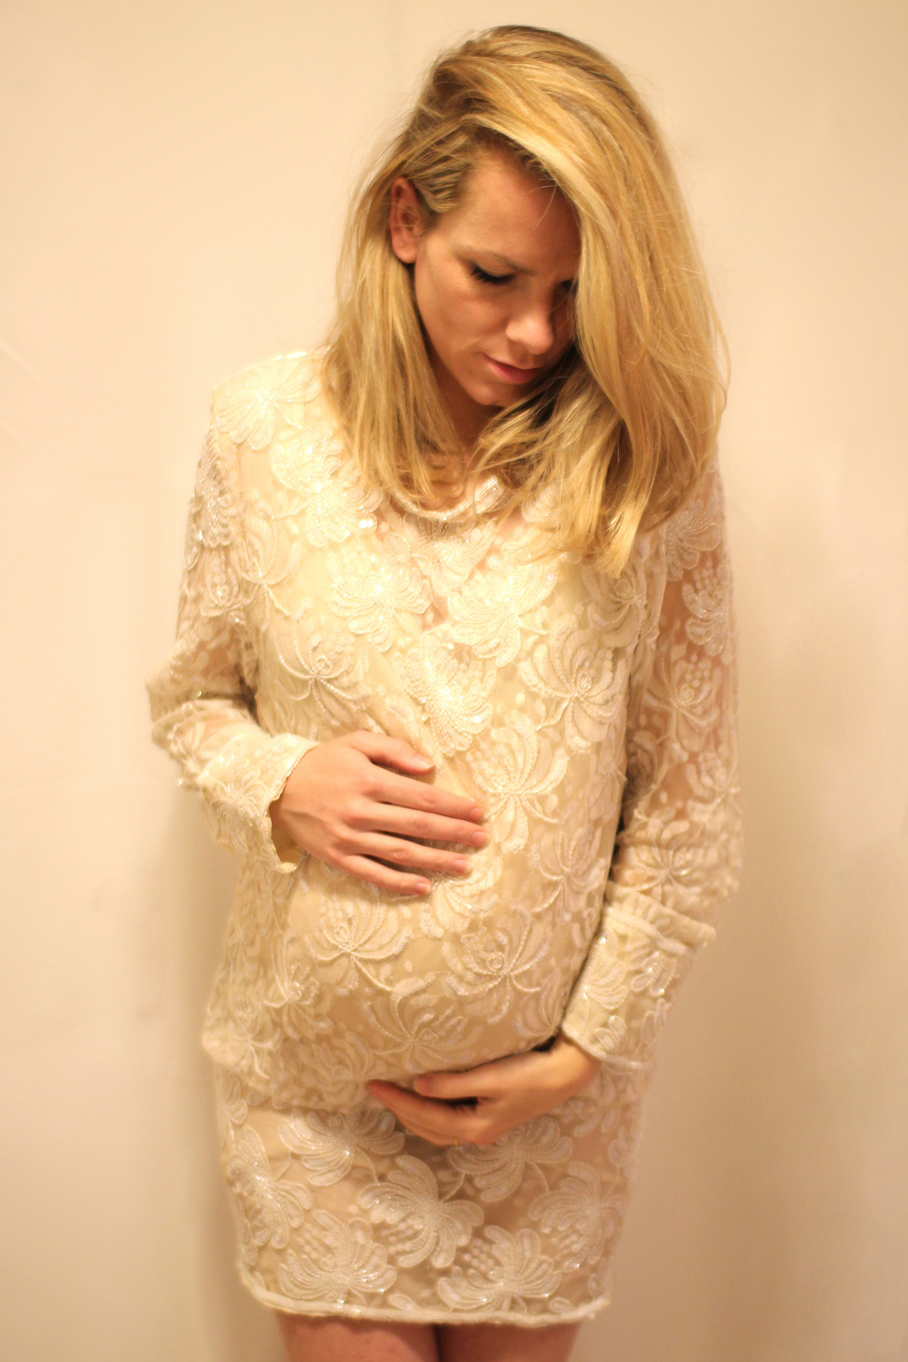 TESSTED PREGNANT OUTFIT